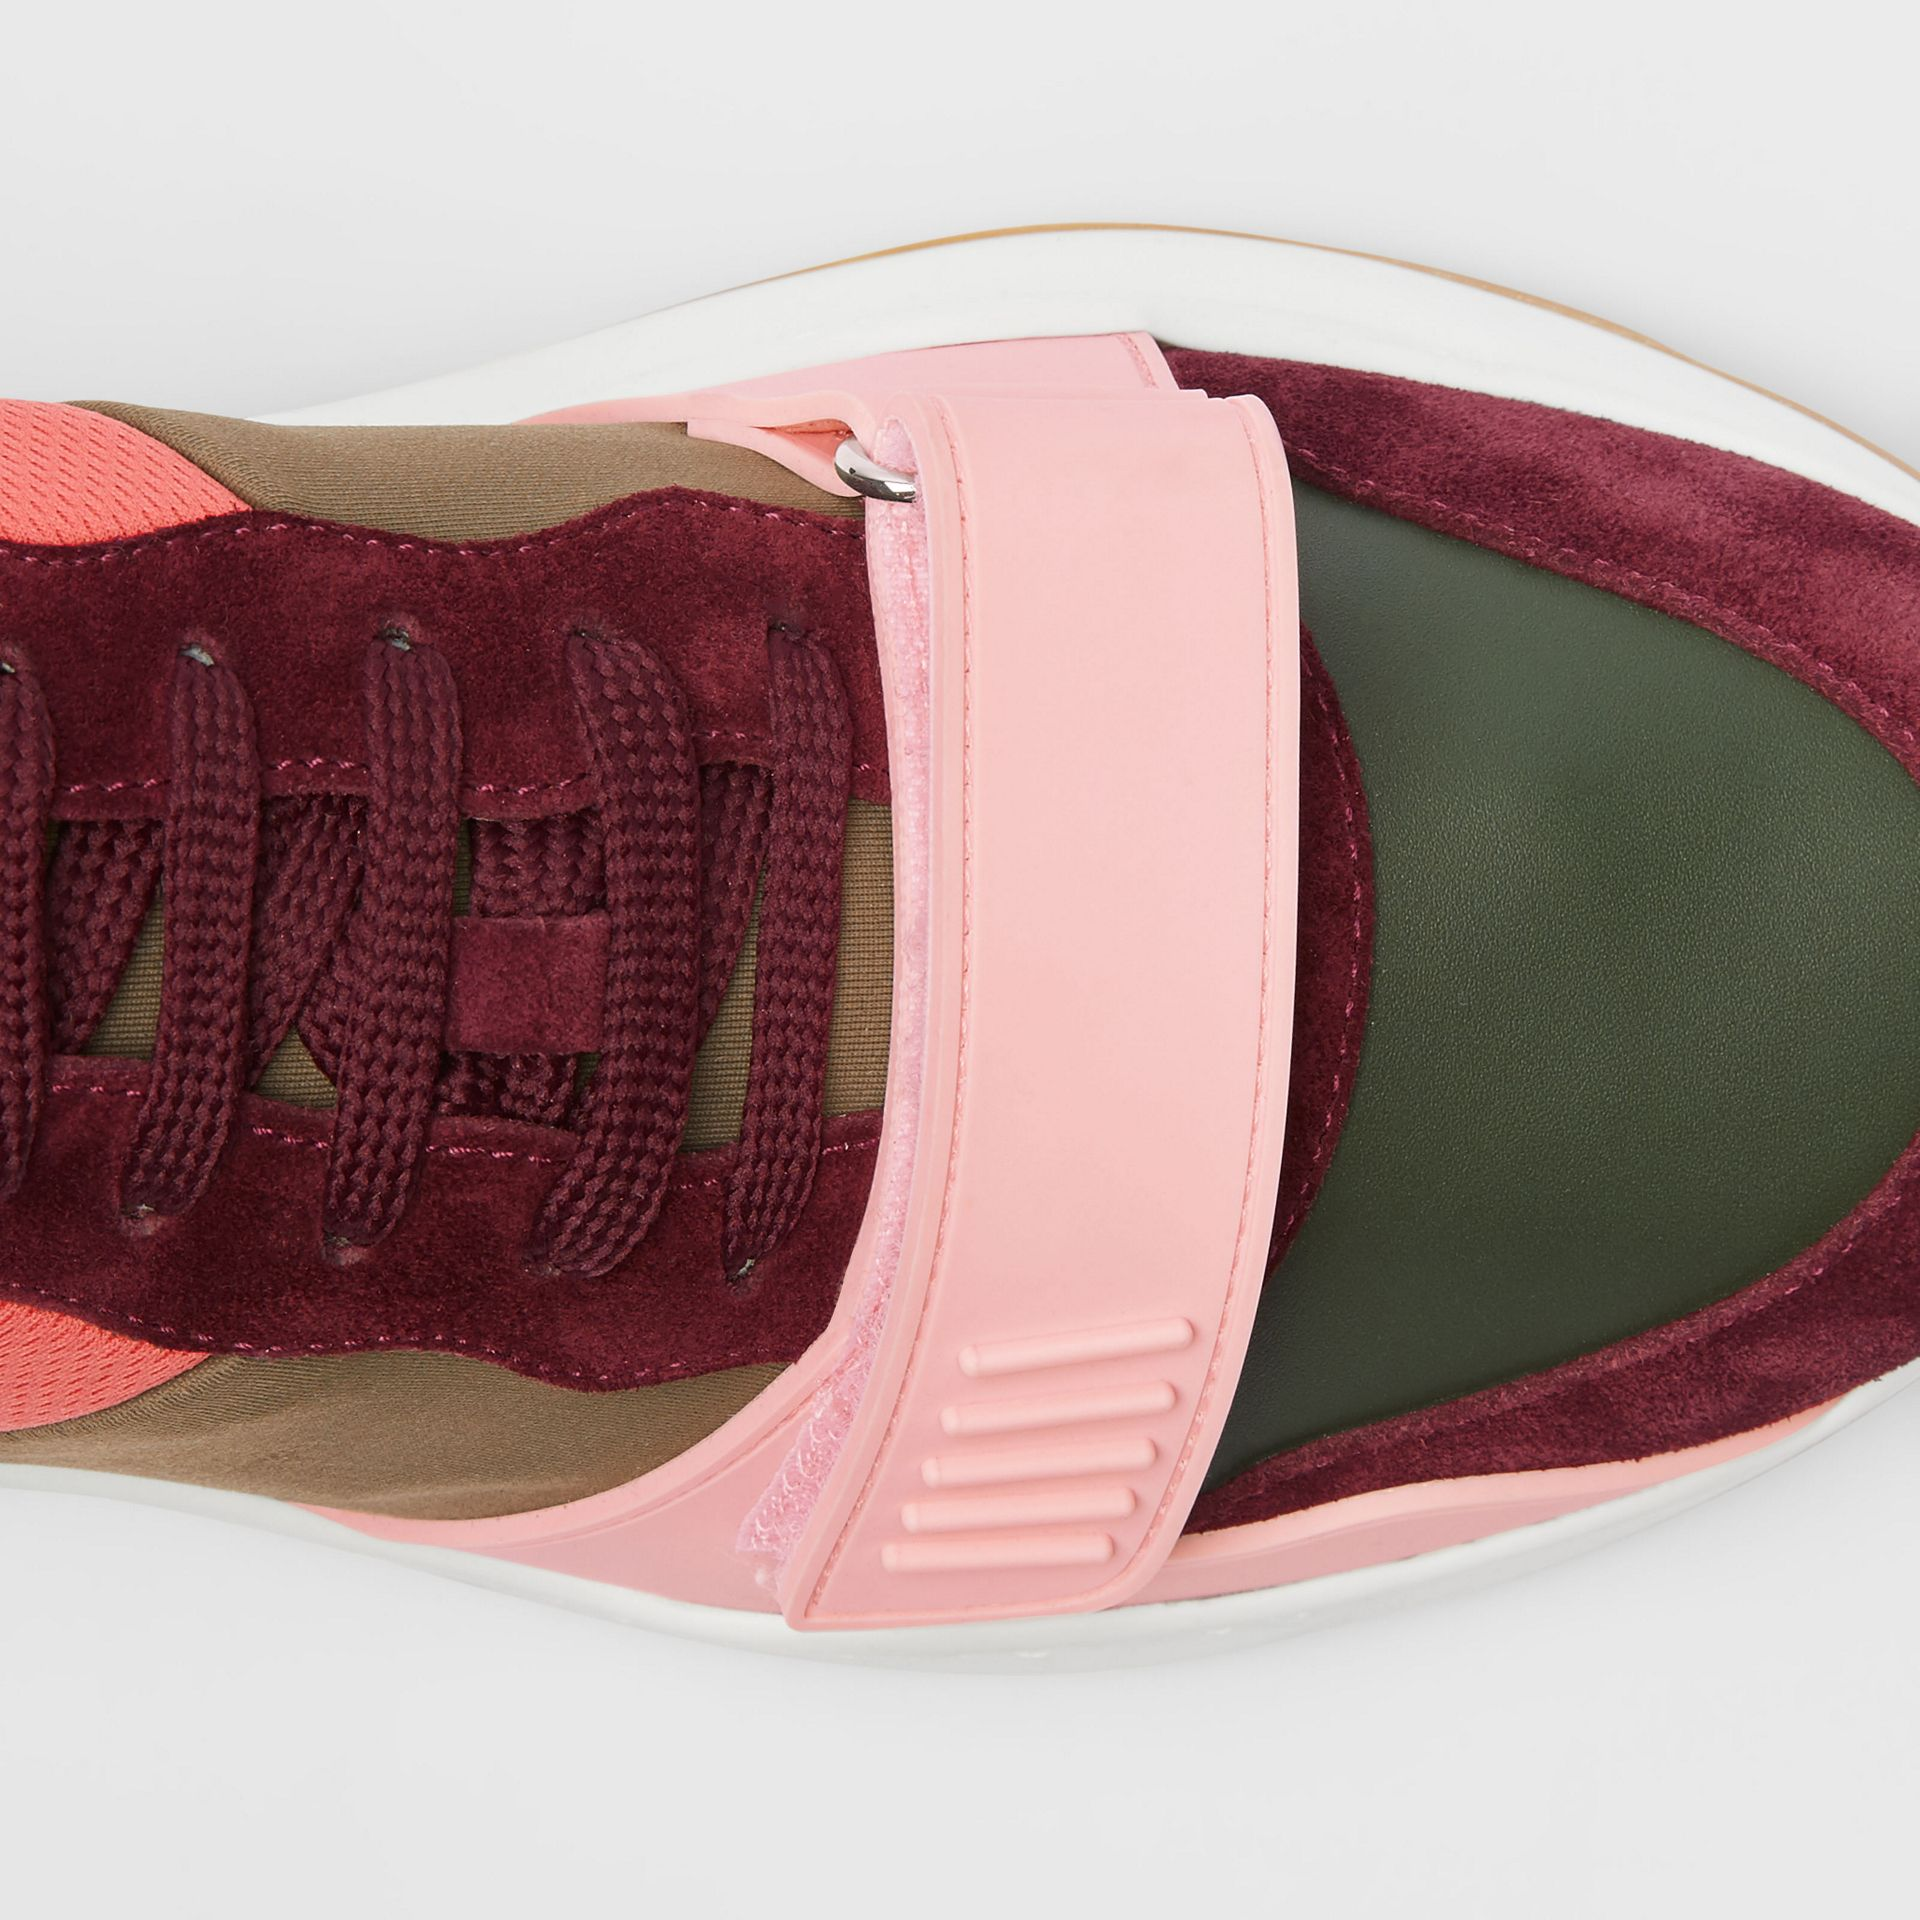 Colour Block Suede and Neoprene Sneakers in Bordeaux/khaki - Men | Burberry Hong Kong - gallery image 1